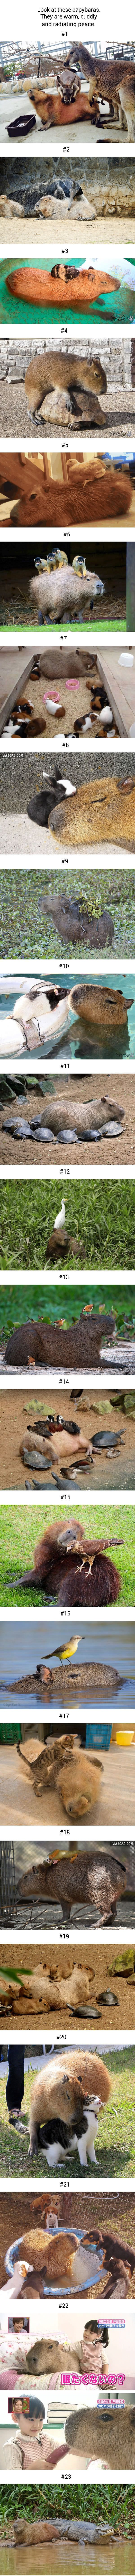 23 Photos Prove Capybara Can Befriend Every Other Species - 9GAG